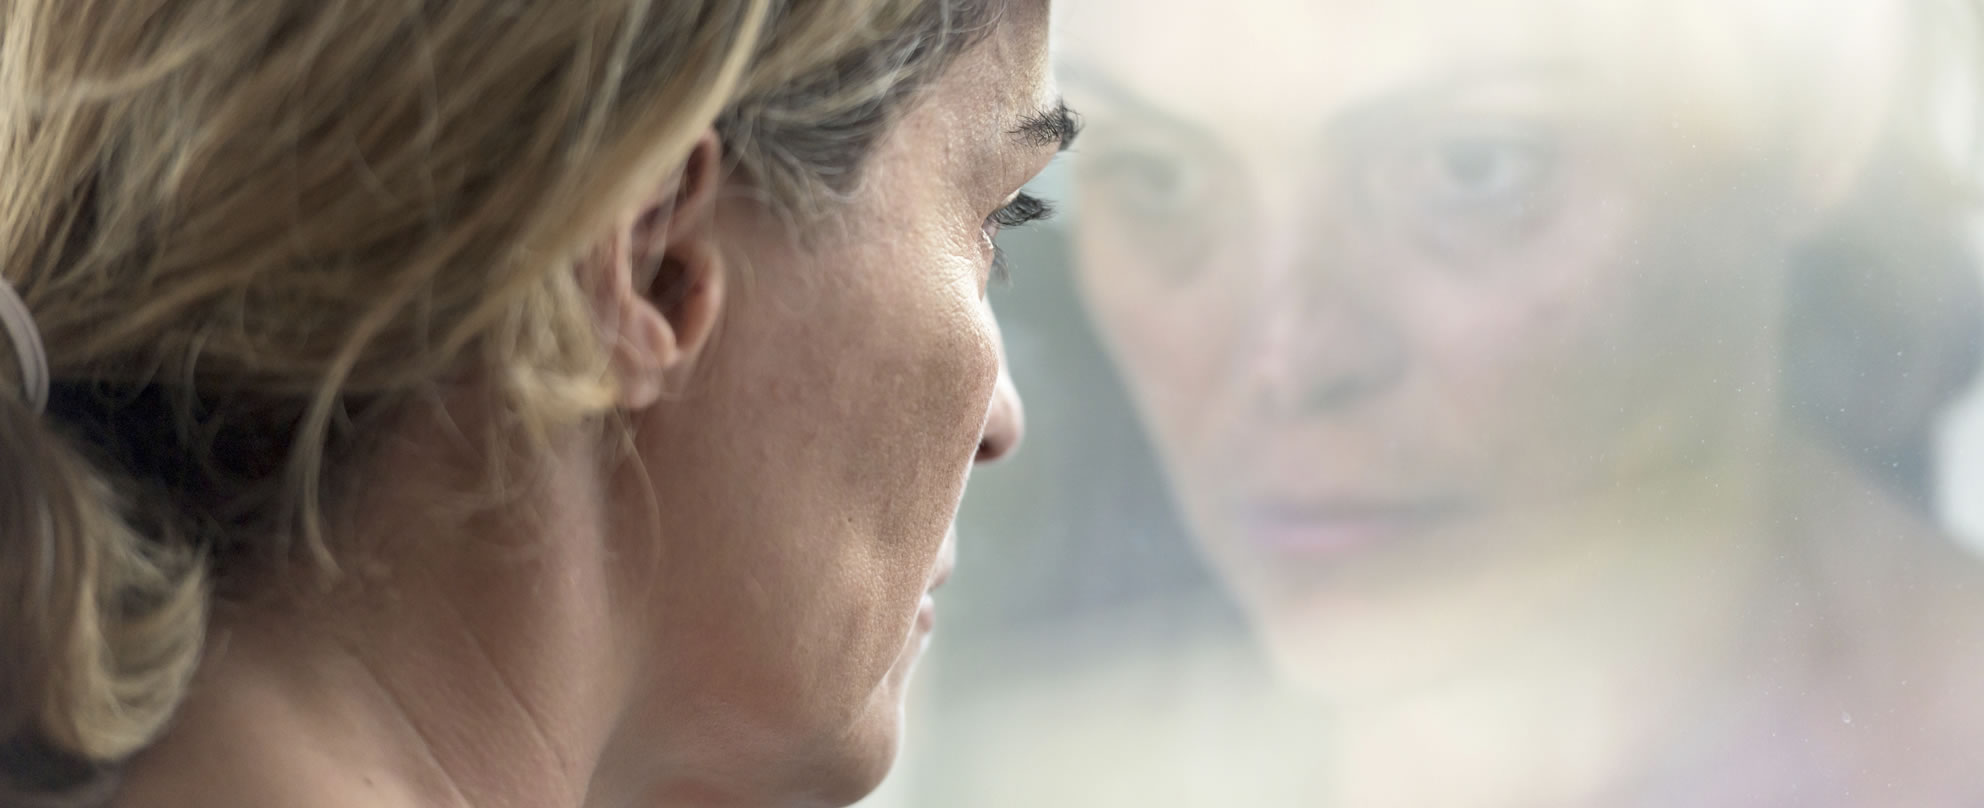 A woman looks despondently out a window that is reflecting her face